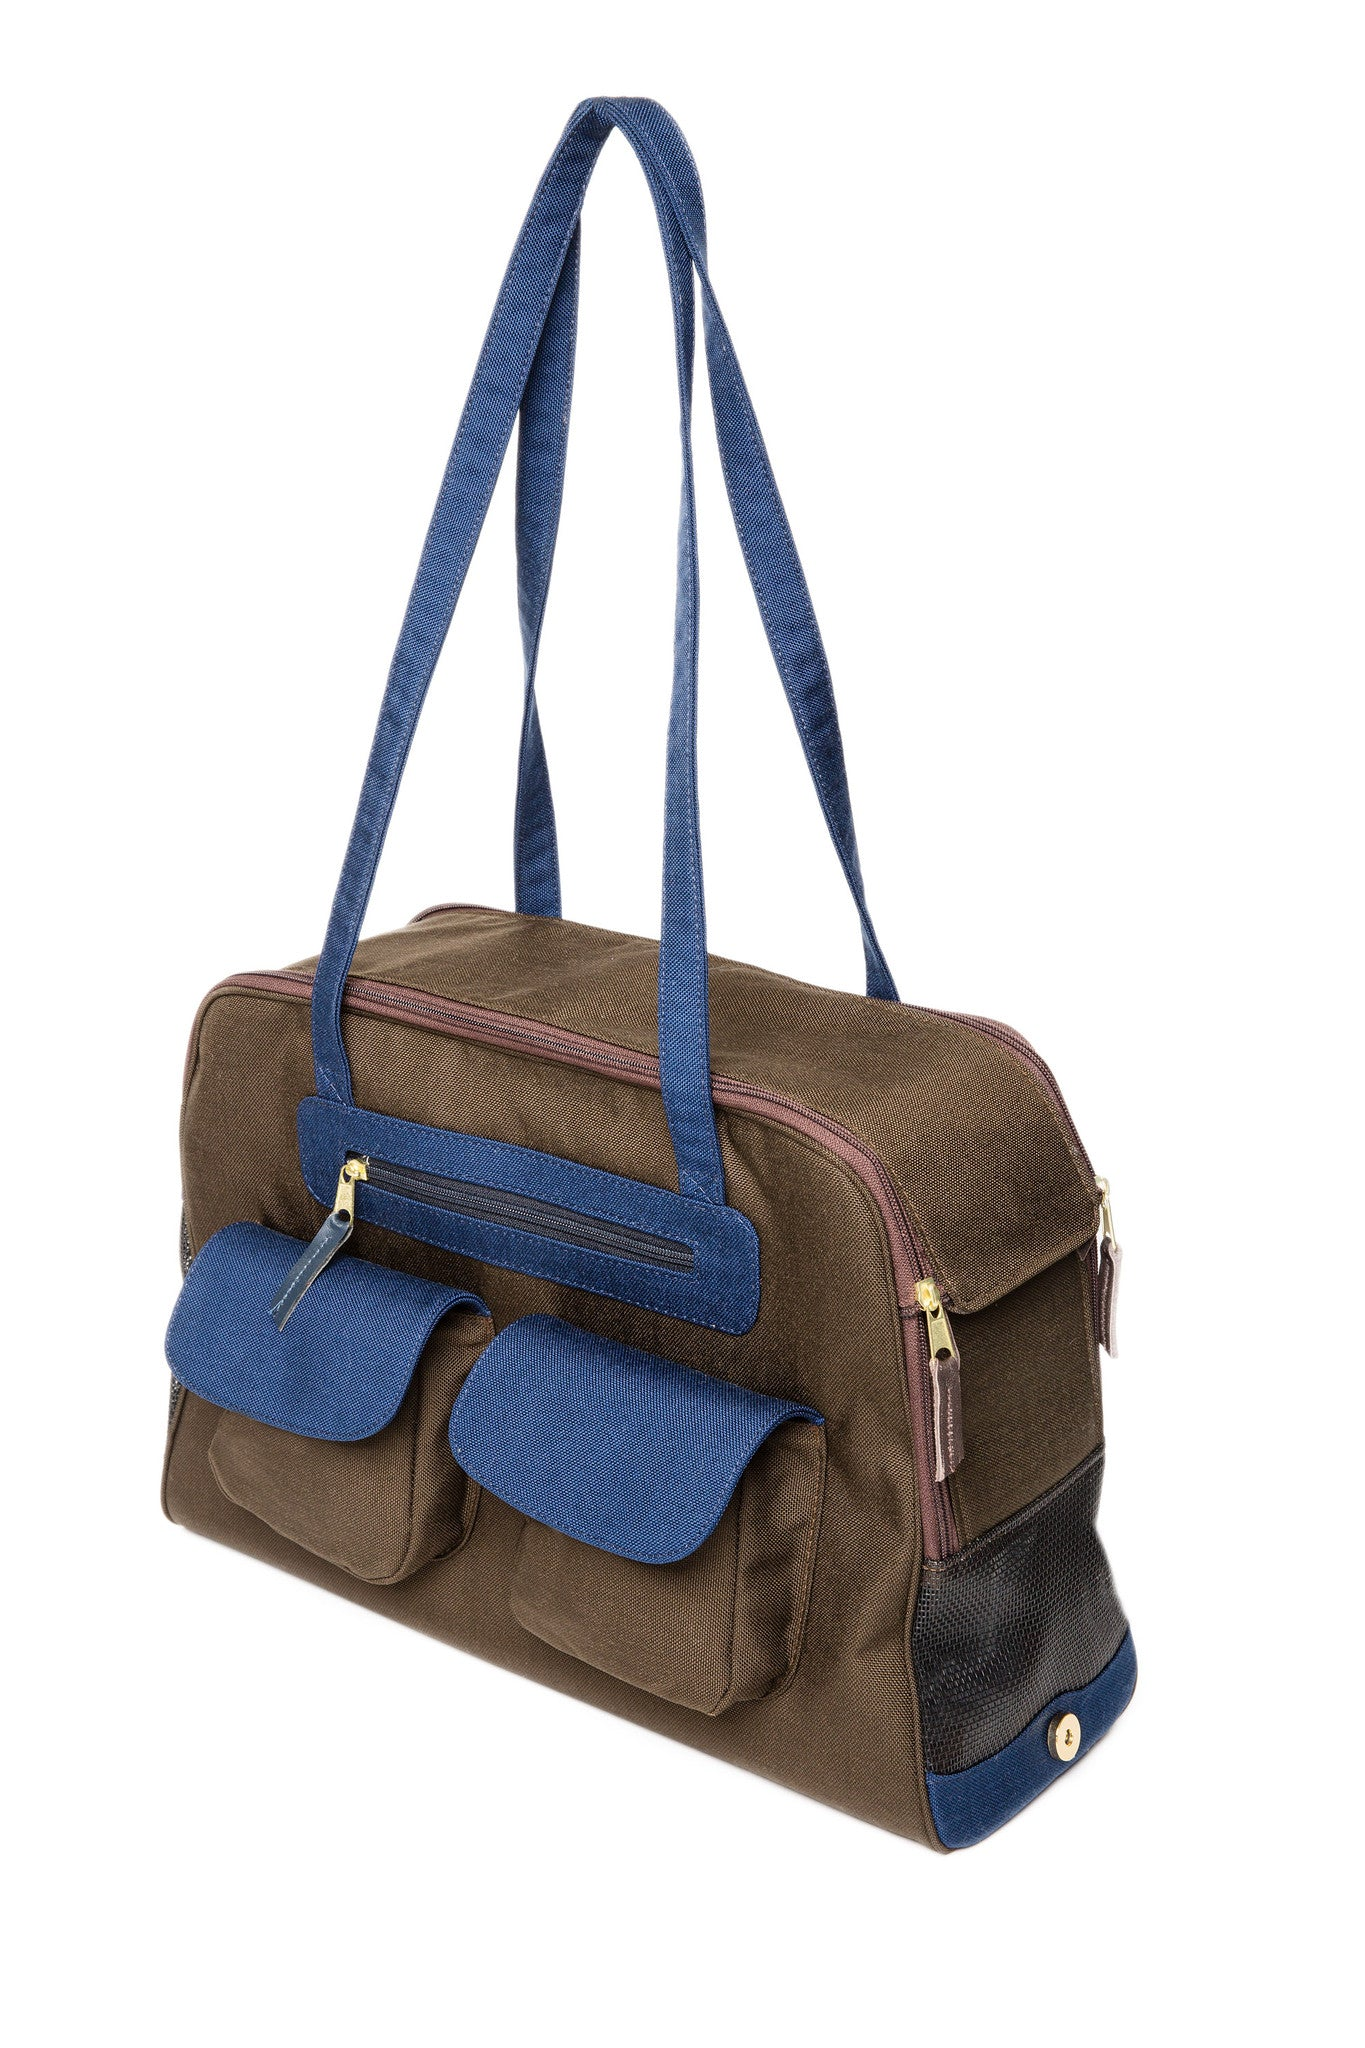 Dog Carrier - Chocolate Canvas, Colored Canvas Trim, 3 Colors